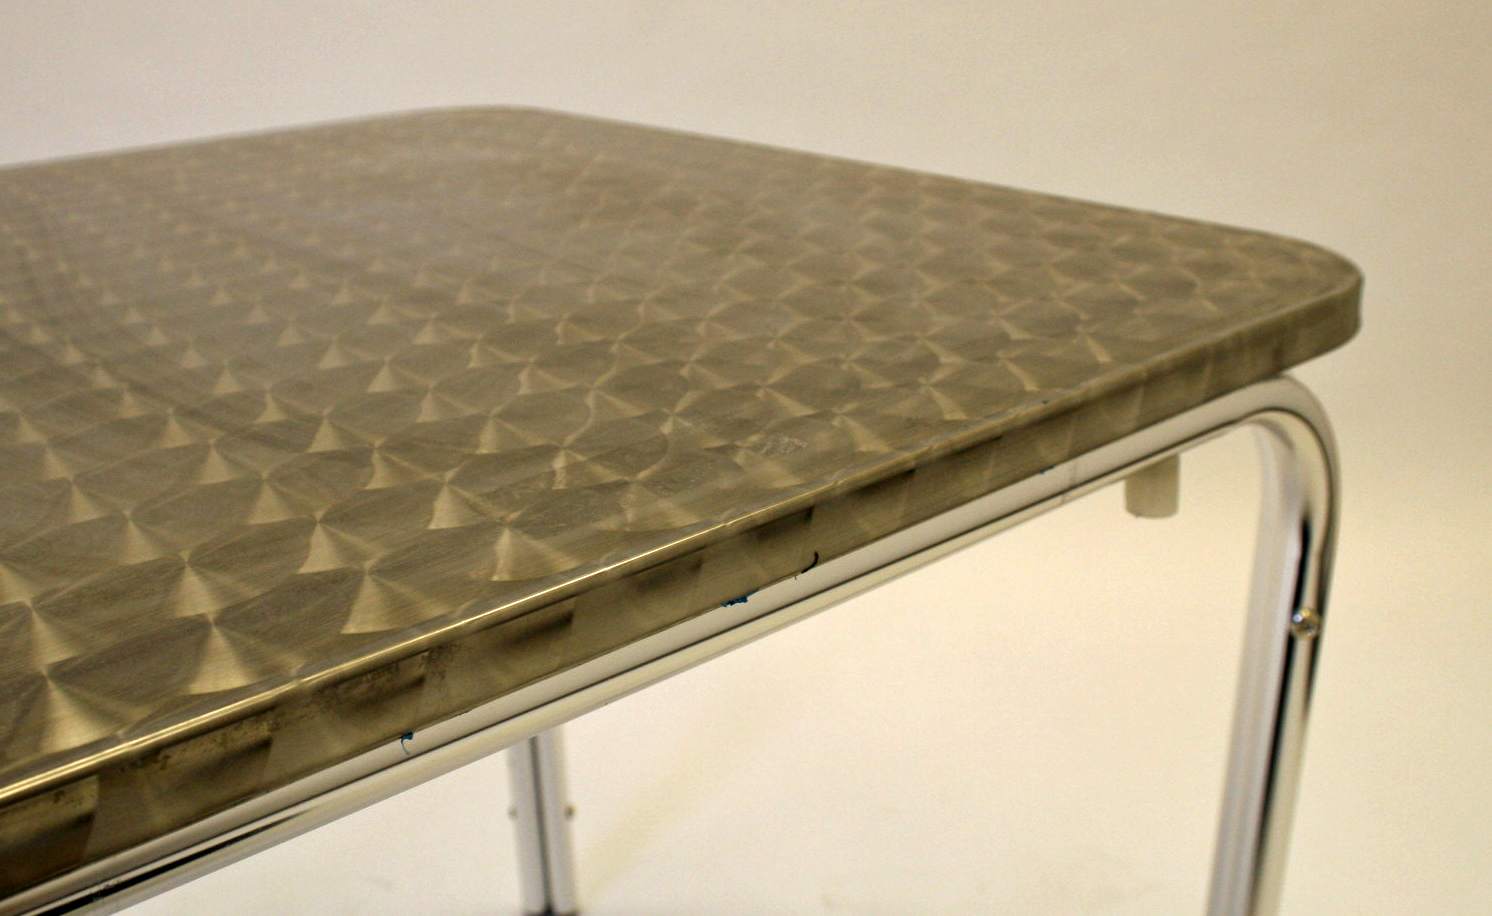 70 cm x 70 cm aluminium fully weatherproof  table with a rolled edge - BE Event Hire